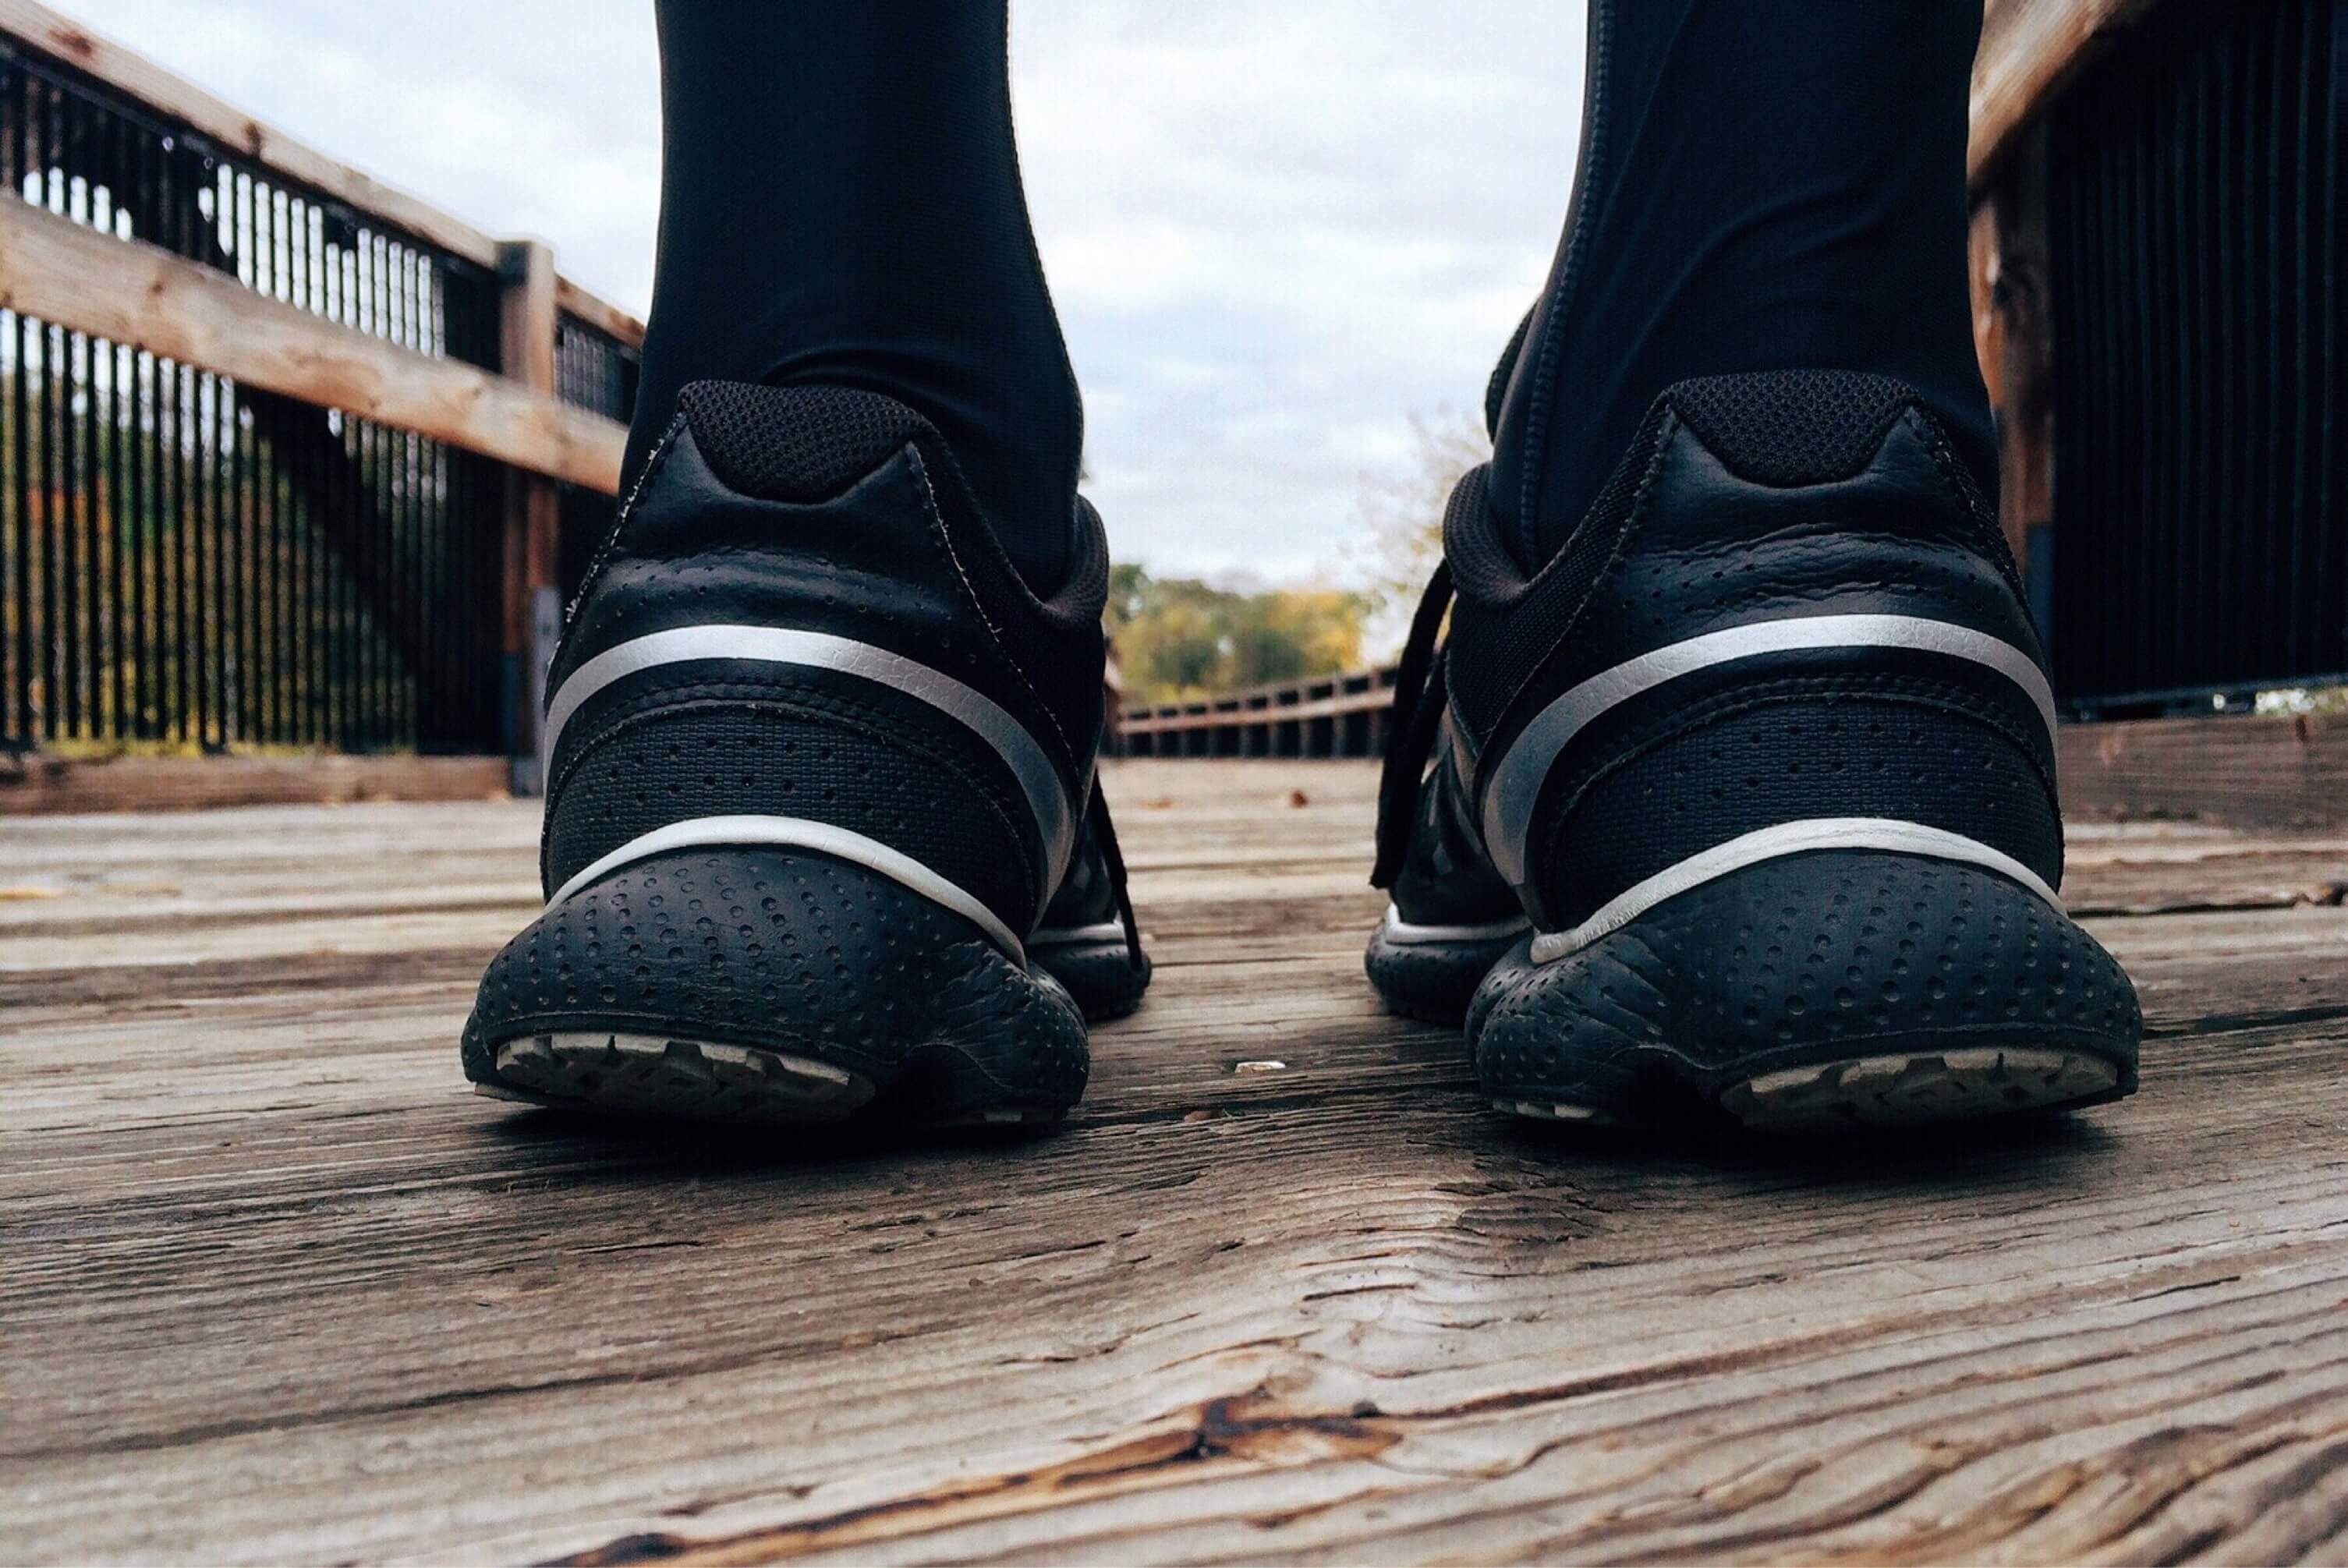 A Second Study Looked At More Than 500 Partints Training In Running Shoes With Varying Heel To Toe Drops Ranging From 0 10mm And Foc On Whether